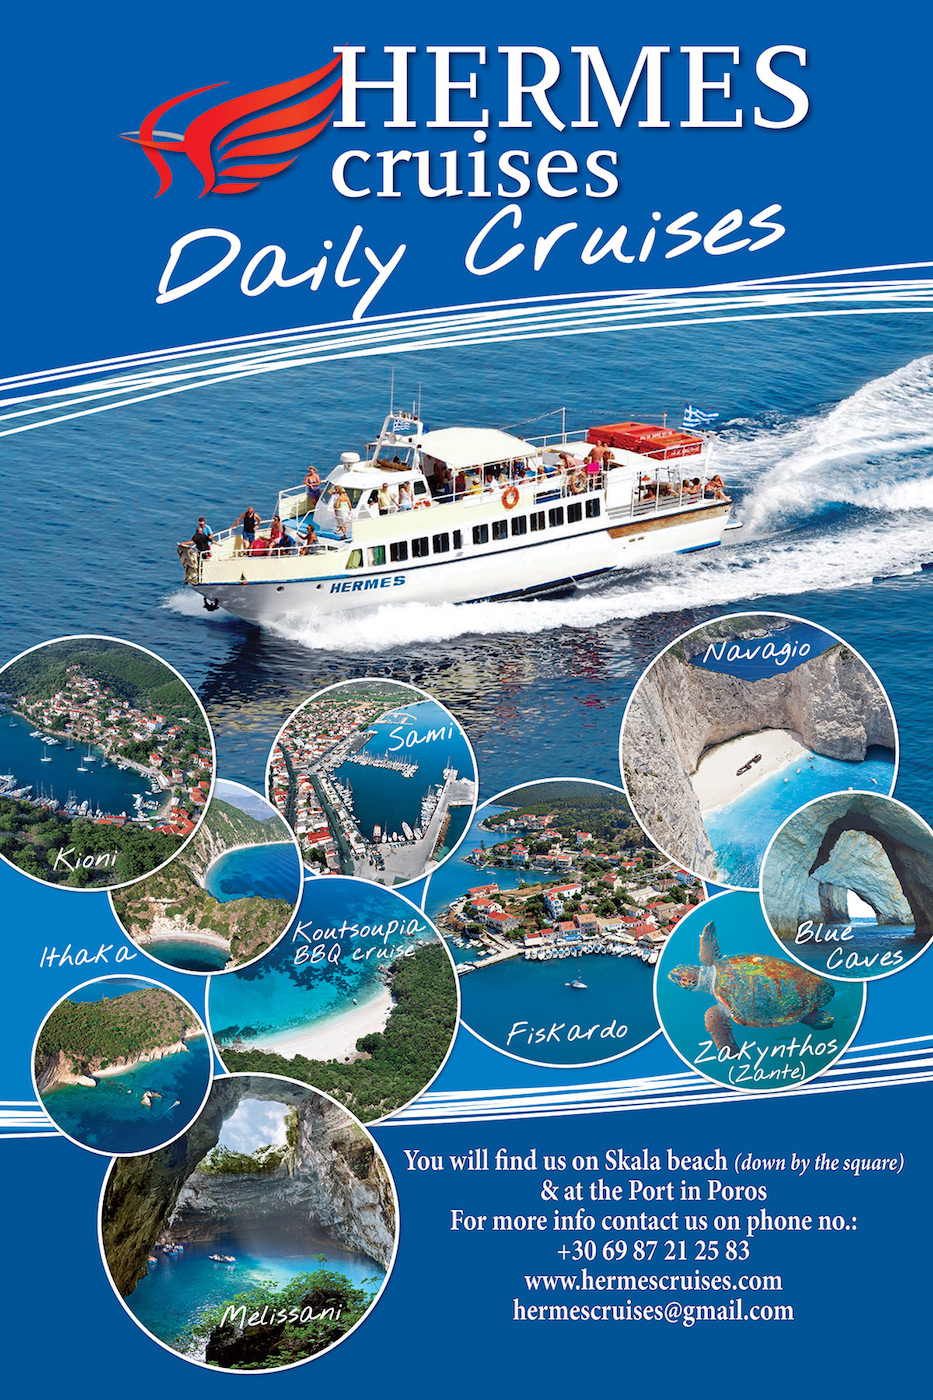 Welcome to Hermes Cruises Kefalonia - Book now a perfect Kefalonia day cruise. Enjoy the beauty of Ionian Sea! Kefalonia Daily Cruises to Ithaca - Kefalonia Daily Cruises to Zakynthos - Kefalonia Boat Cruises - Kefalonia Sea Excursions - Kefalonia Boat Tours - Hermes Cruises Kefalonia - Boat Cruises Kefalonia